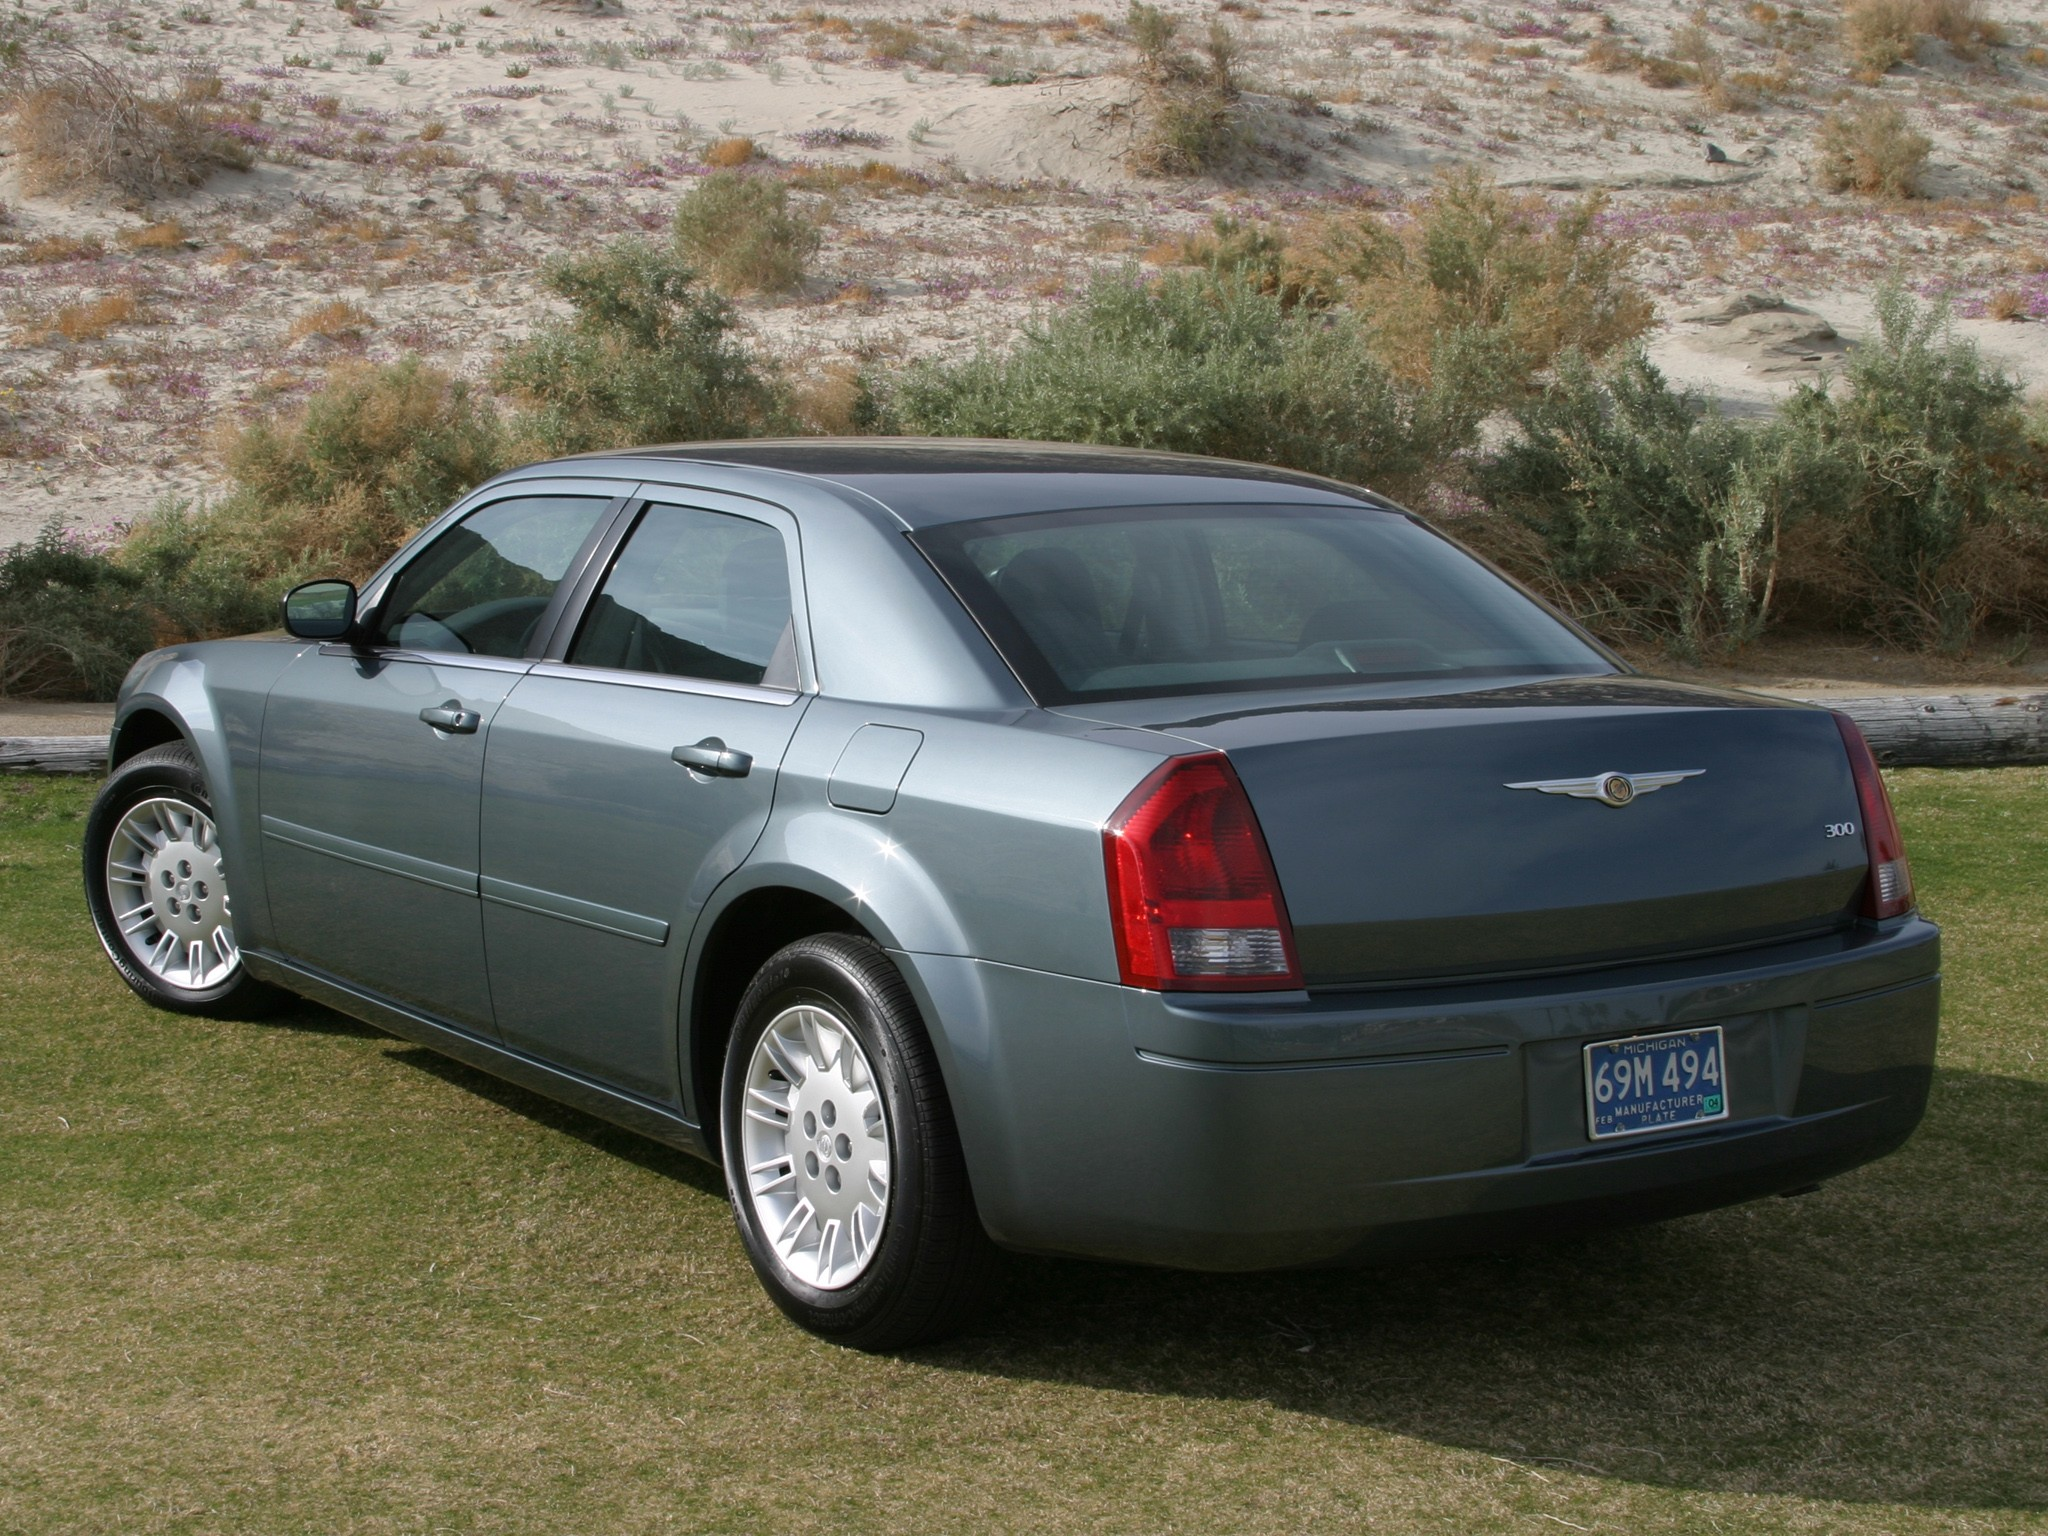 2007 chrysler 300 reviews chrysler 300 price photos html. Black Bedroom Furniture Sets. Home Design Ideas